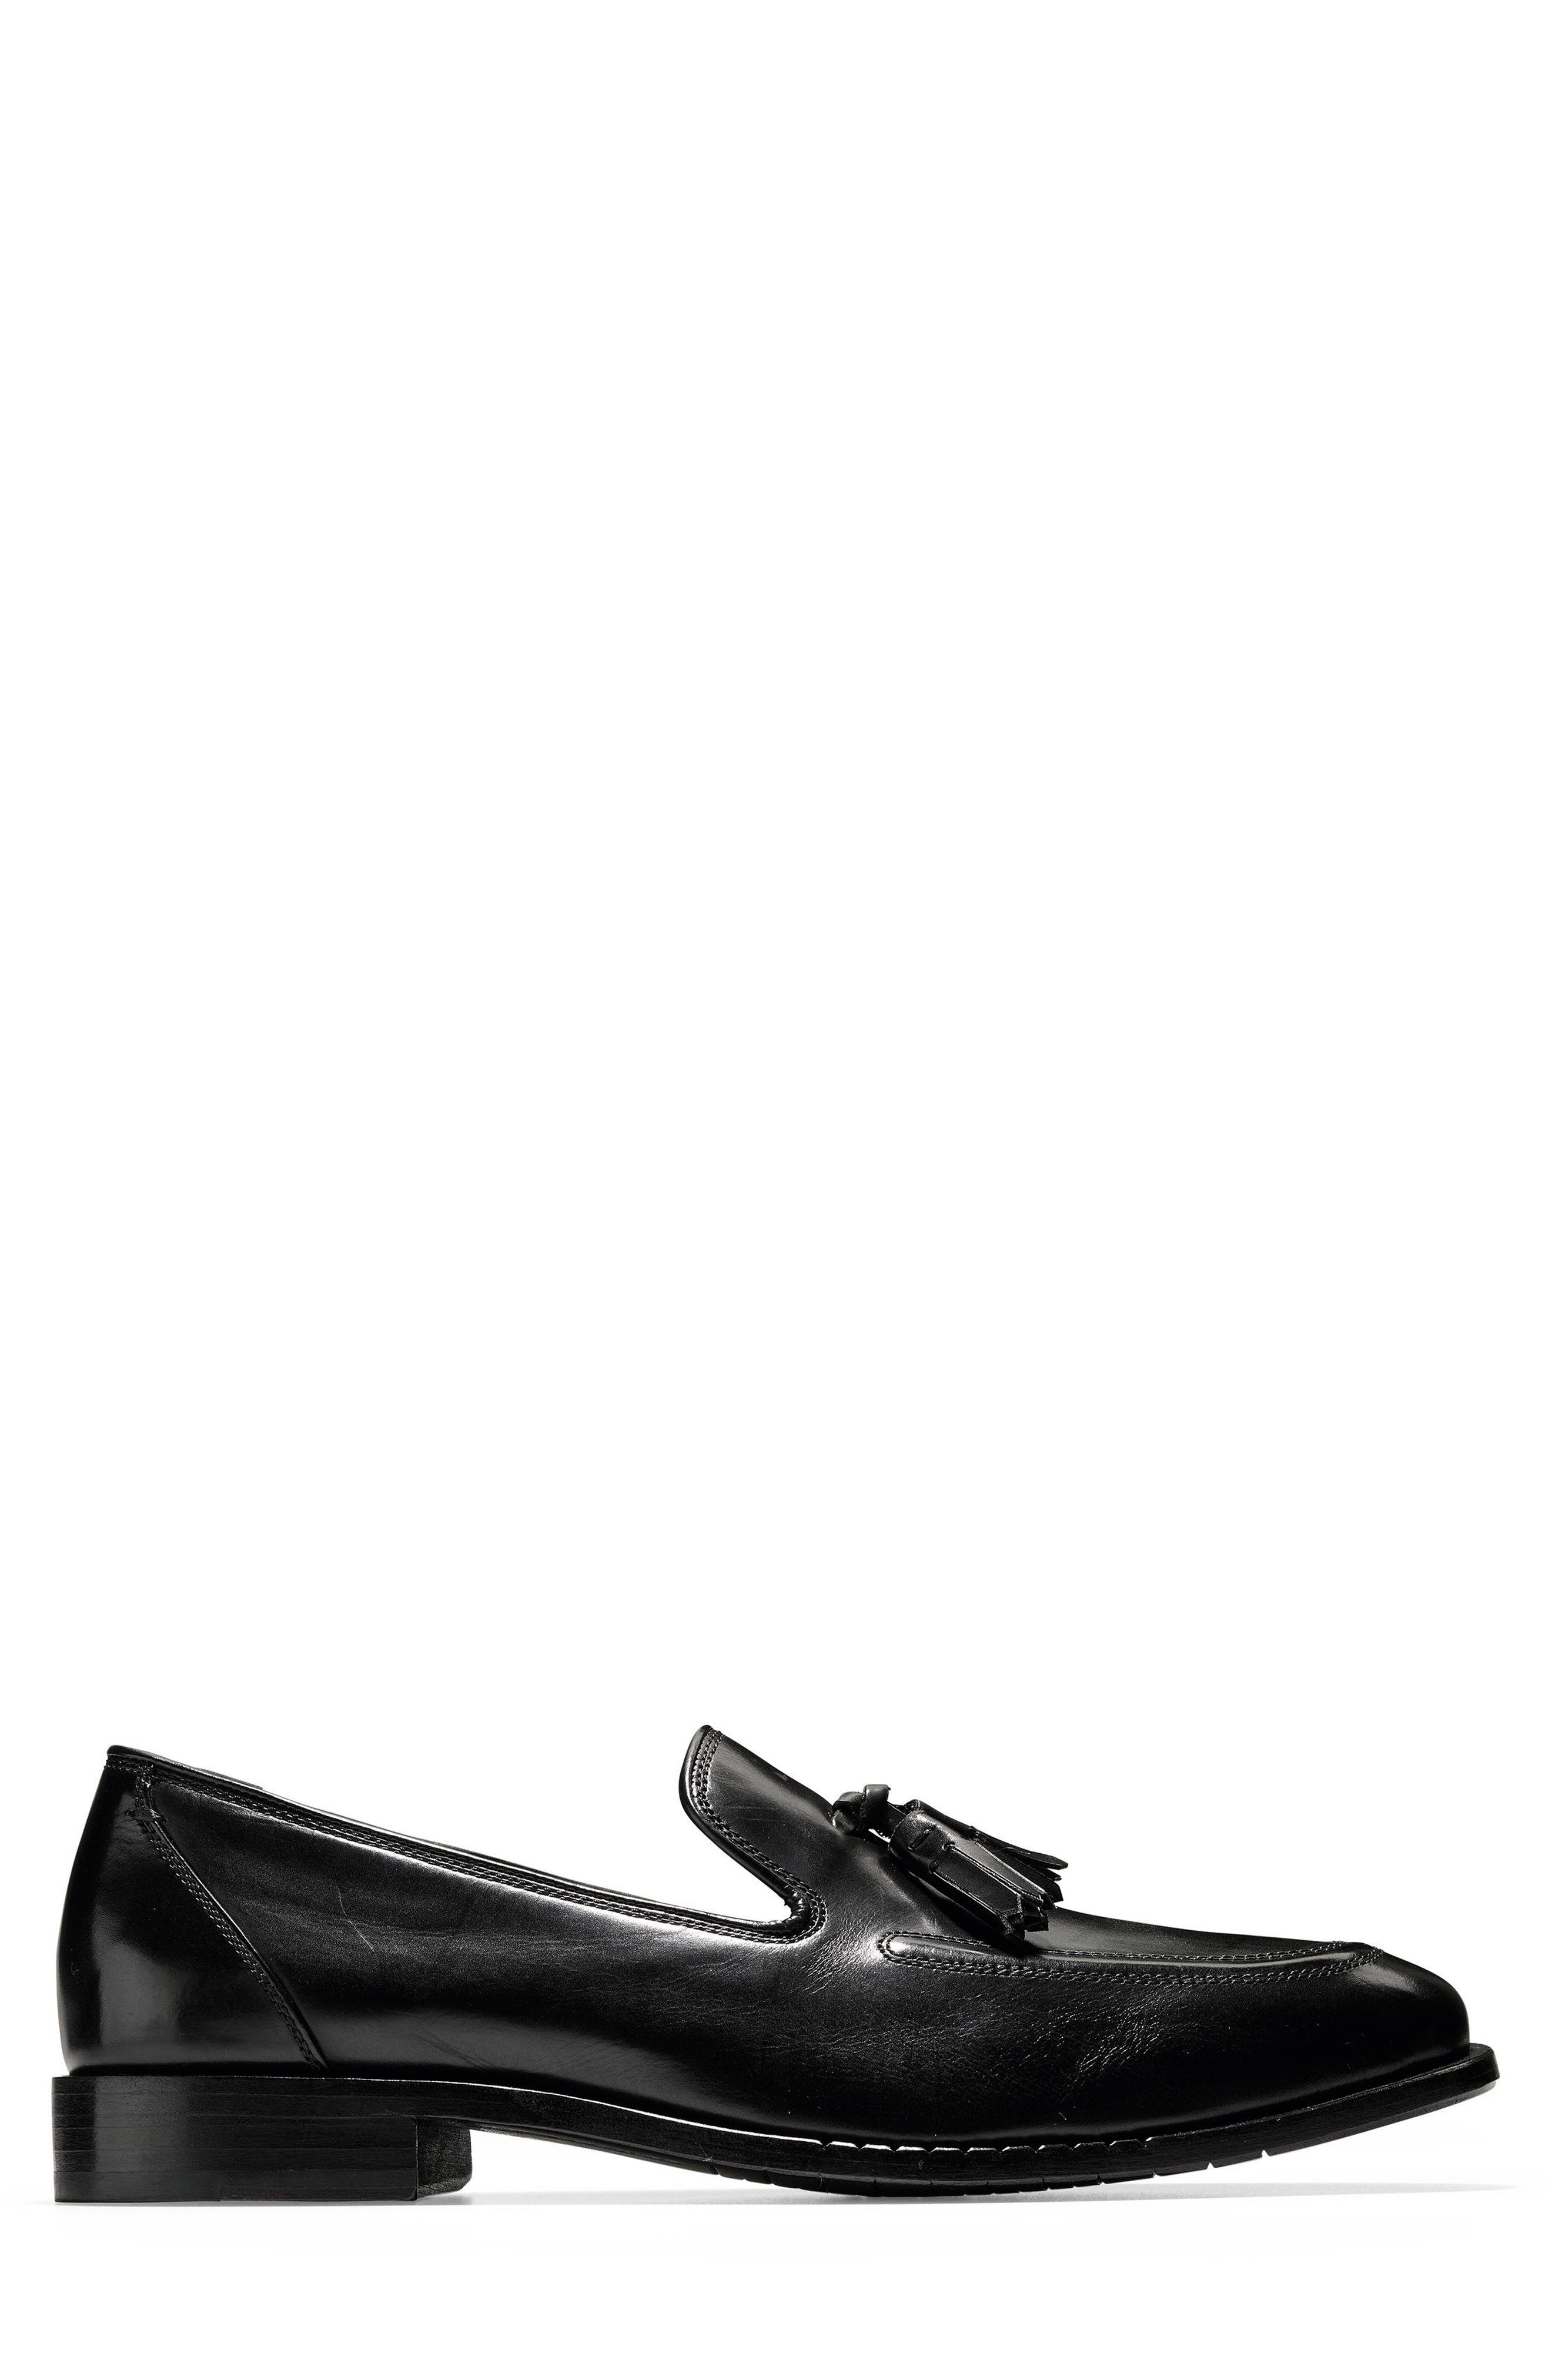 COLE HAAN,                             Washington Grand Tassel Loafer,                             Alternate thumbnail 3, color,                             001